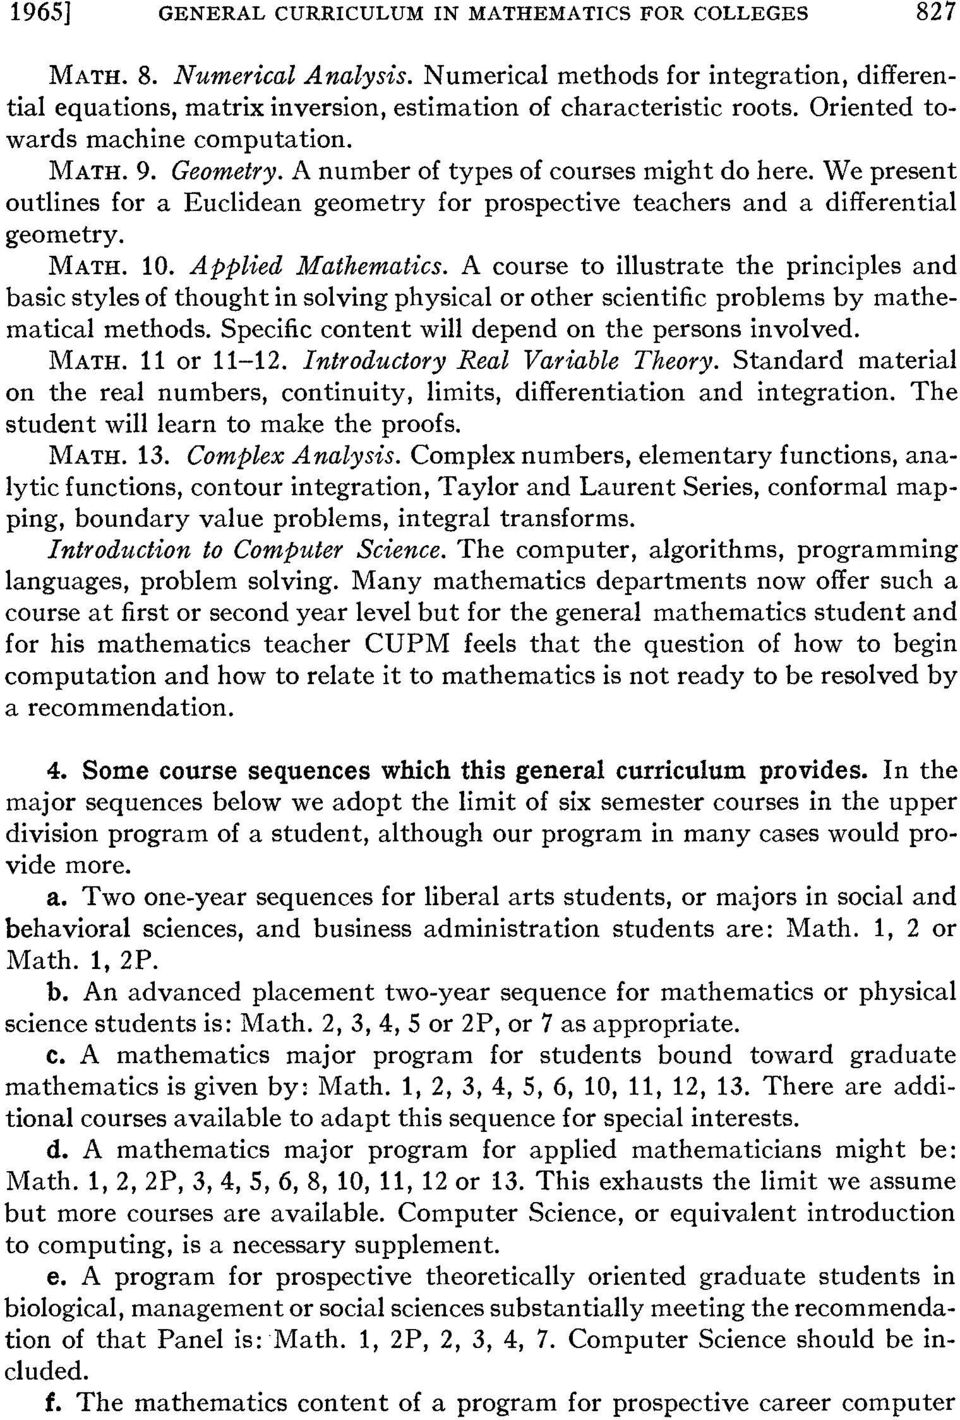 MATH. 10. Applied Mathematics. A course to illustrate the principles and basic styles of thought in solving physical or other scientific problems by mathematical methods.